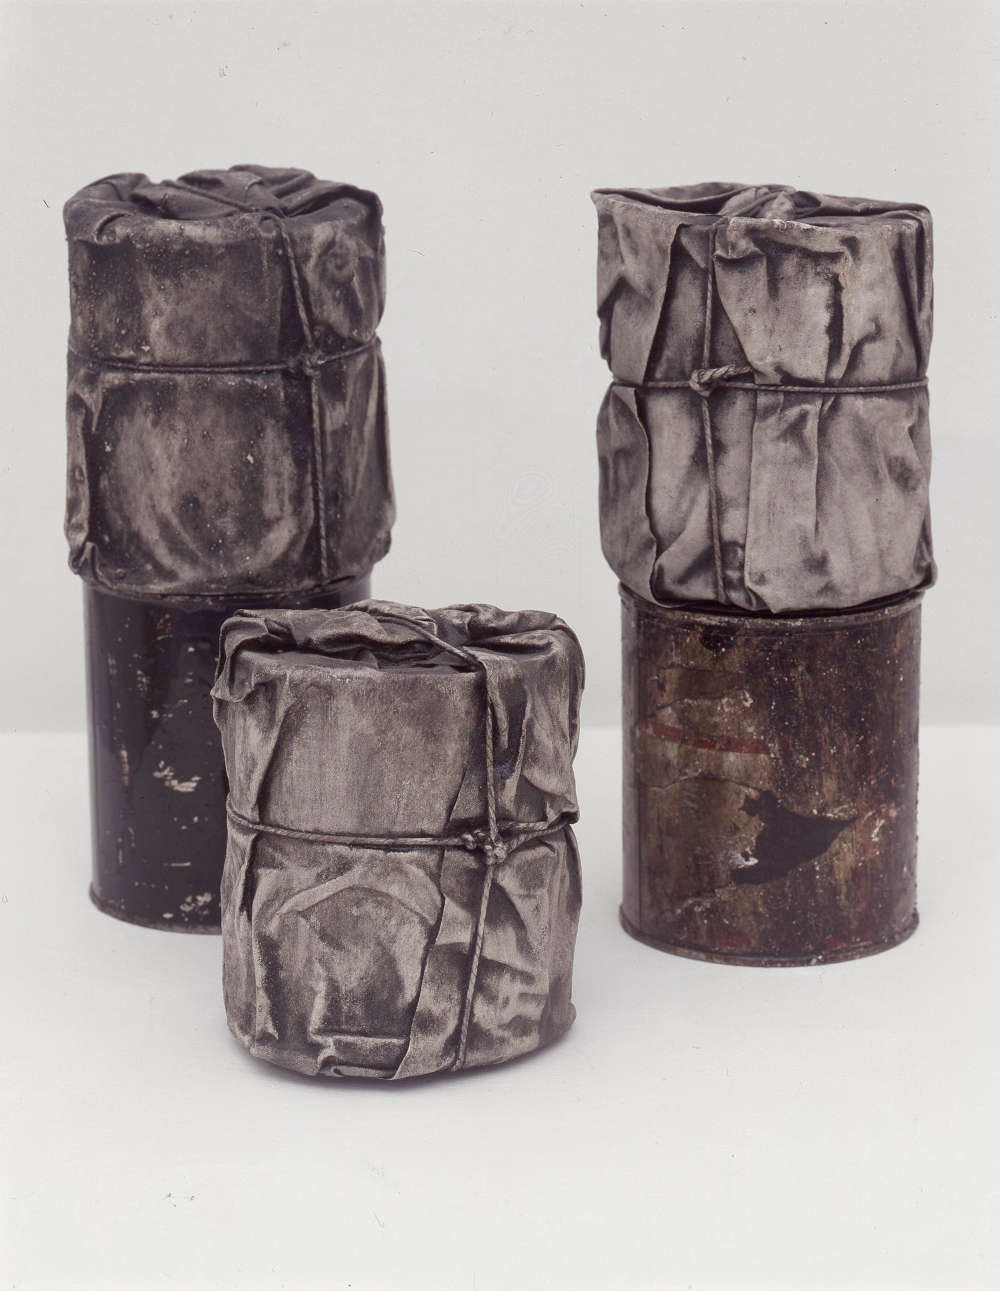 Christo, Packed Cans, 1958-59. Group of 5 cans (3 wrapped) lacquered canvas and twine 12.7 x 11.5 cm wrapped, 12 x 10.5 cm unwrapped © the Artist. Courtesy Annely Juda Fine Art, London